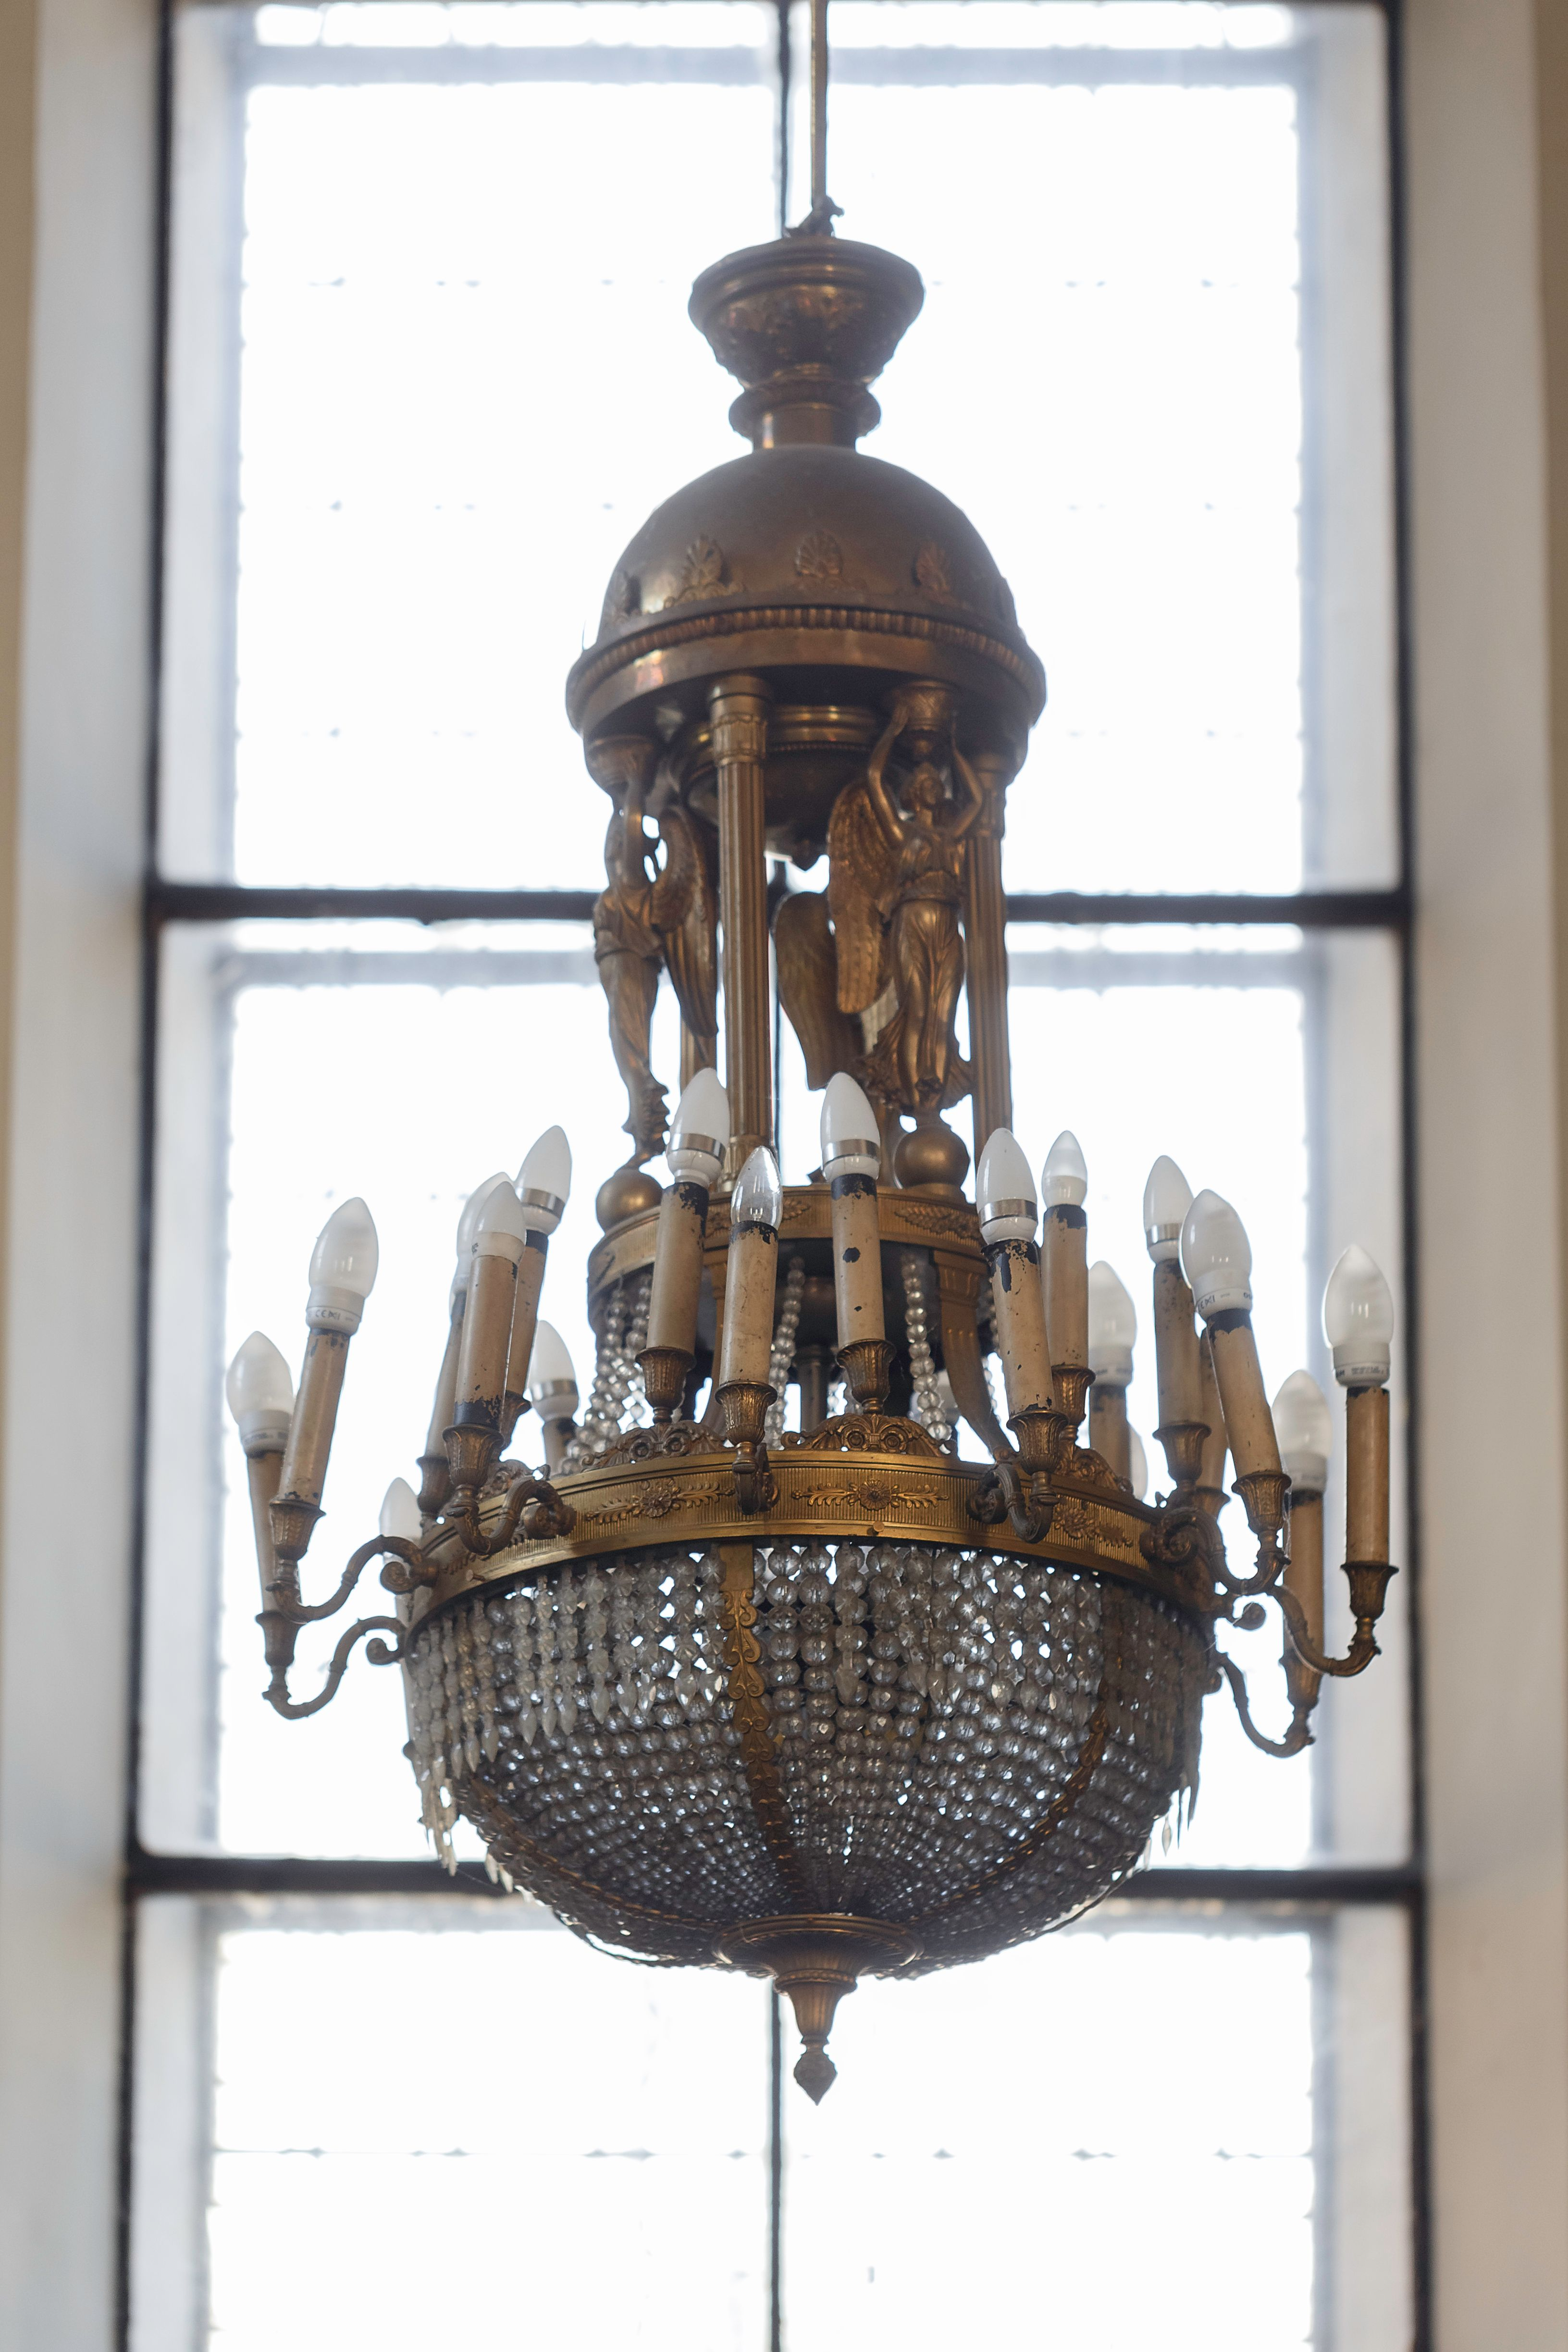 Chandelier, 1925, the church of the Assumption of the Blessed Virgin Mary (Vytautas the Great) in Kaunas. Photo by Povilas Jarmala, 2019